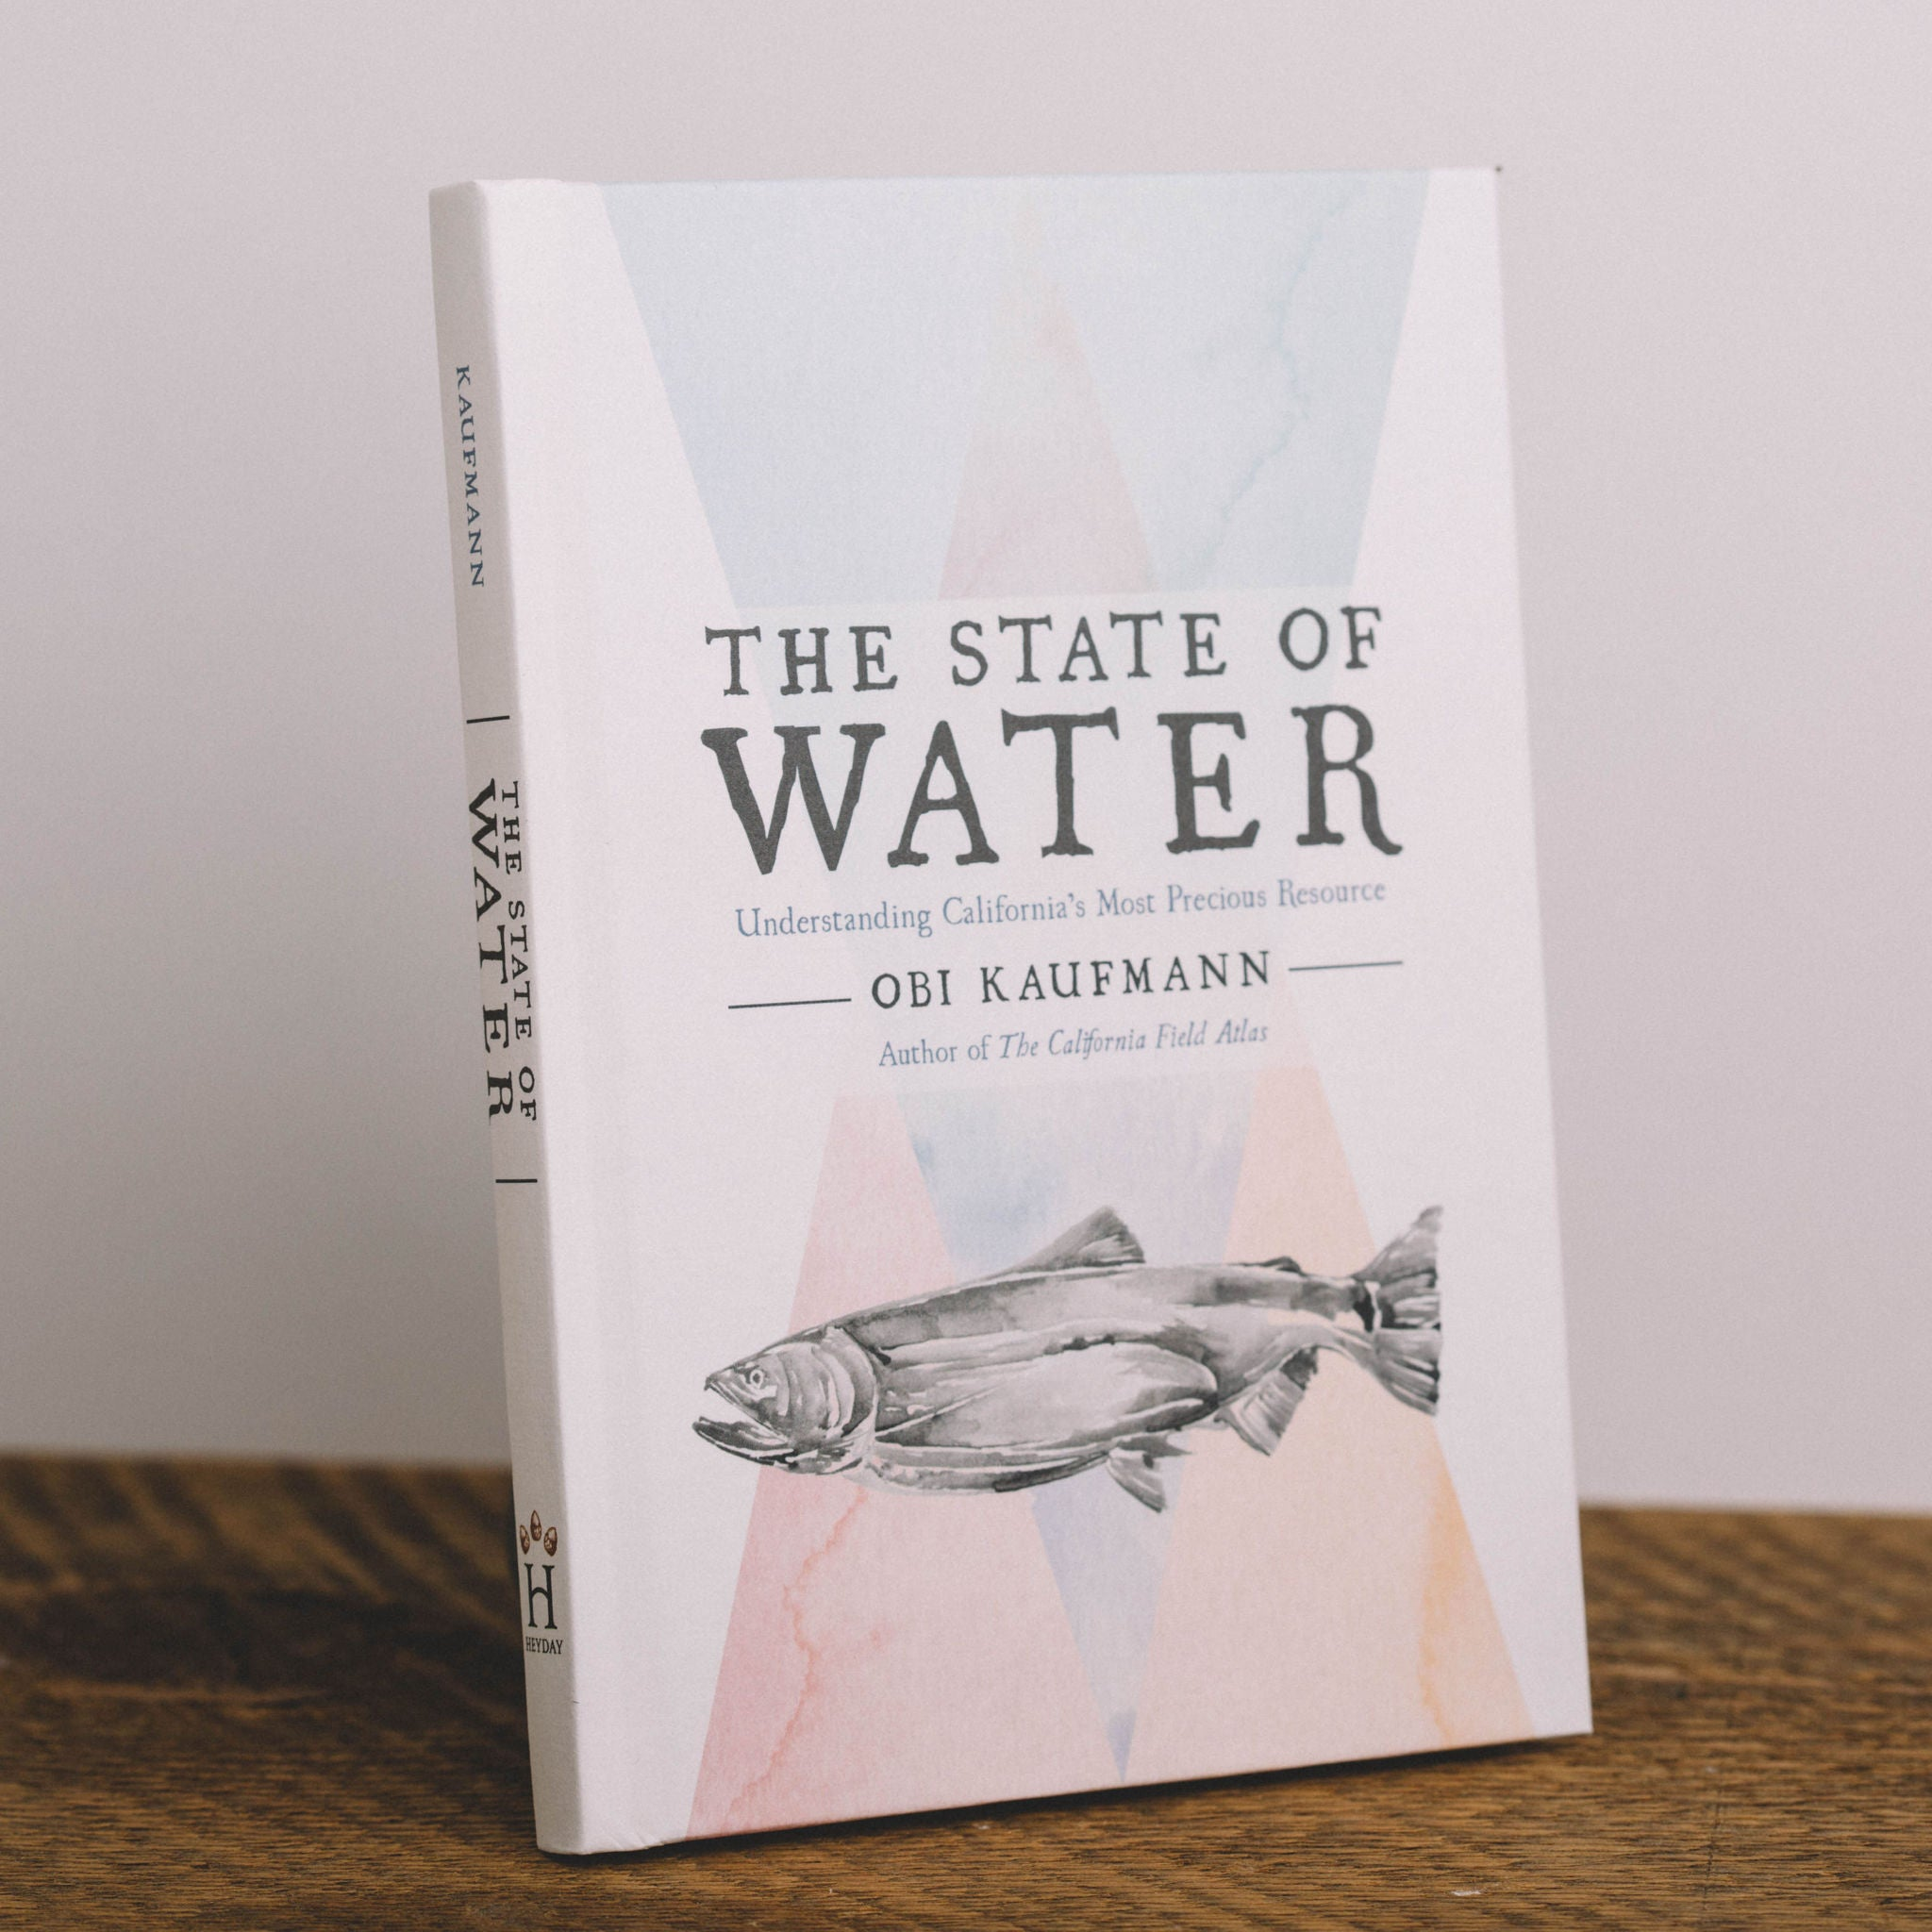 THE STATE OF WATER || OBI KAUFMANN